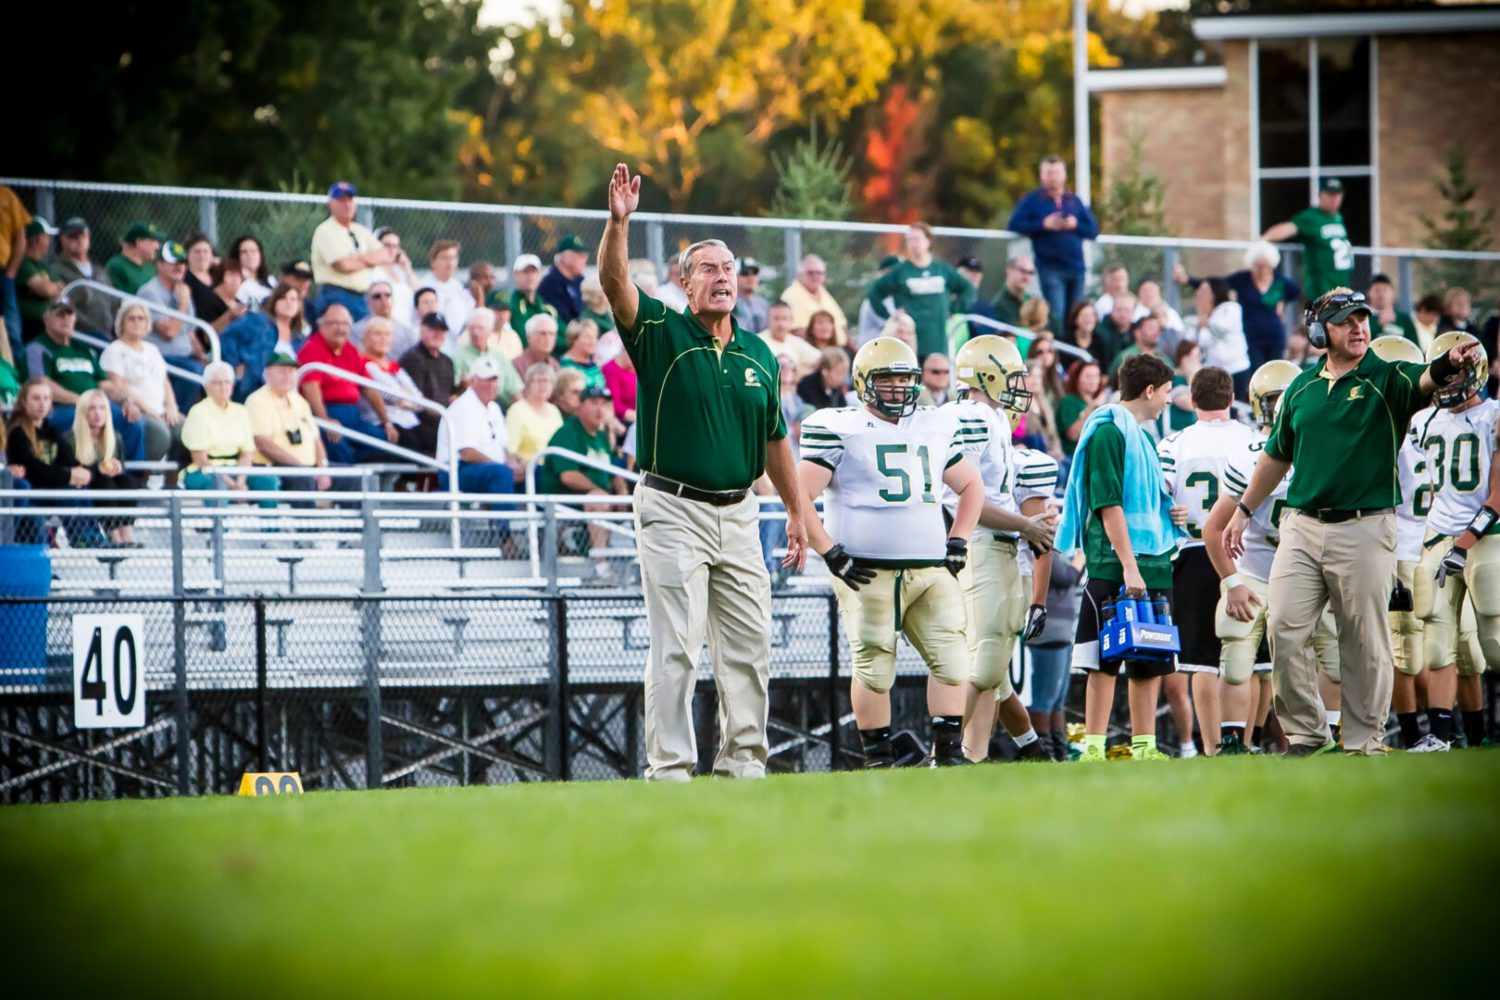 Moyes' Memories honors long time crusader assistant coach Mike Ribecky